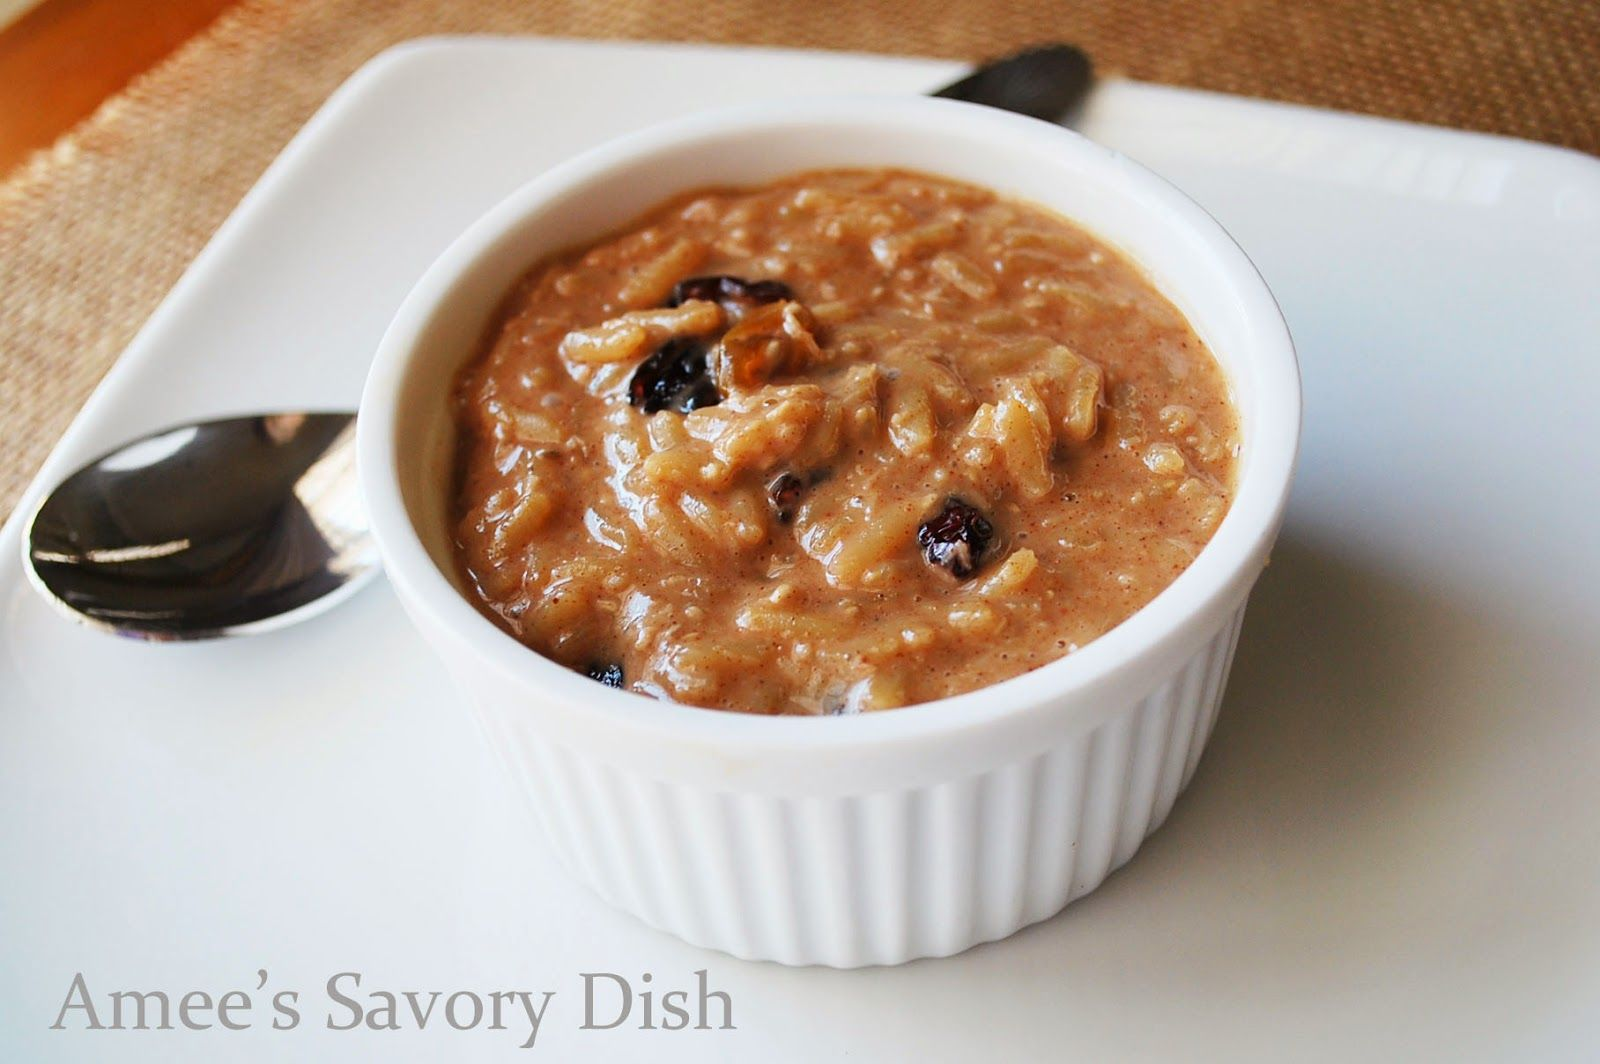 Amee's Savory Dish: Coconut Chia Brown Rice Pudding